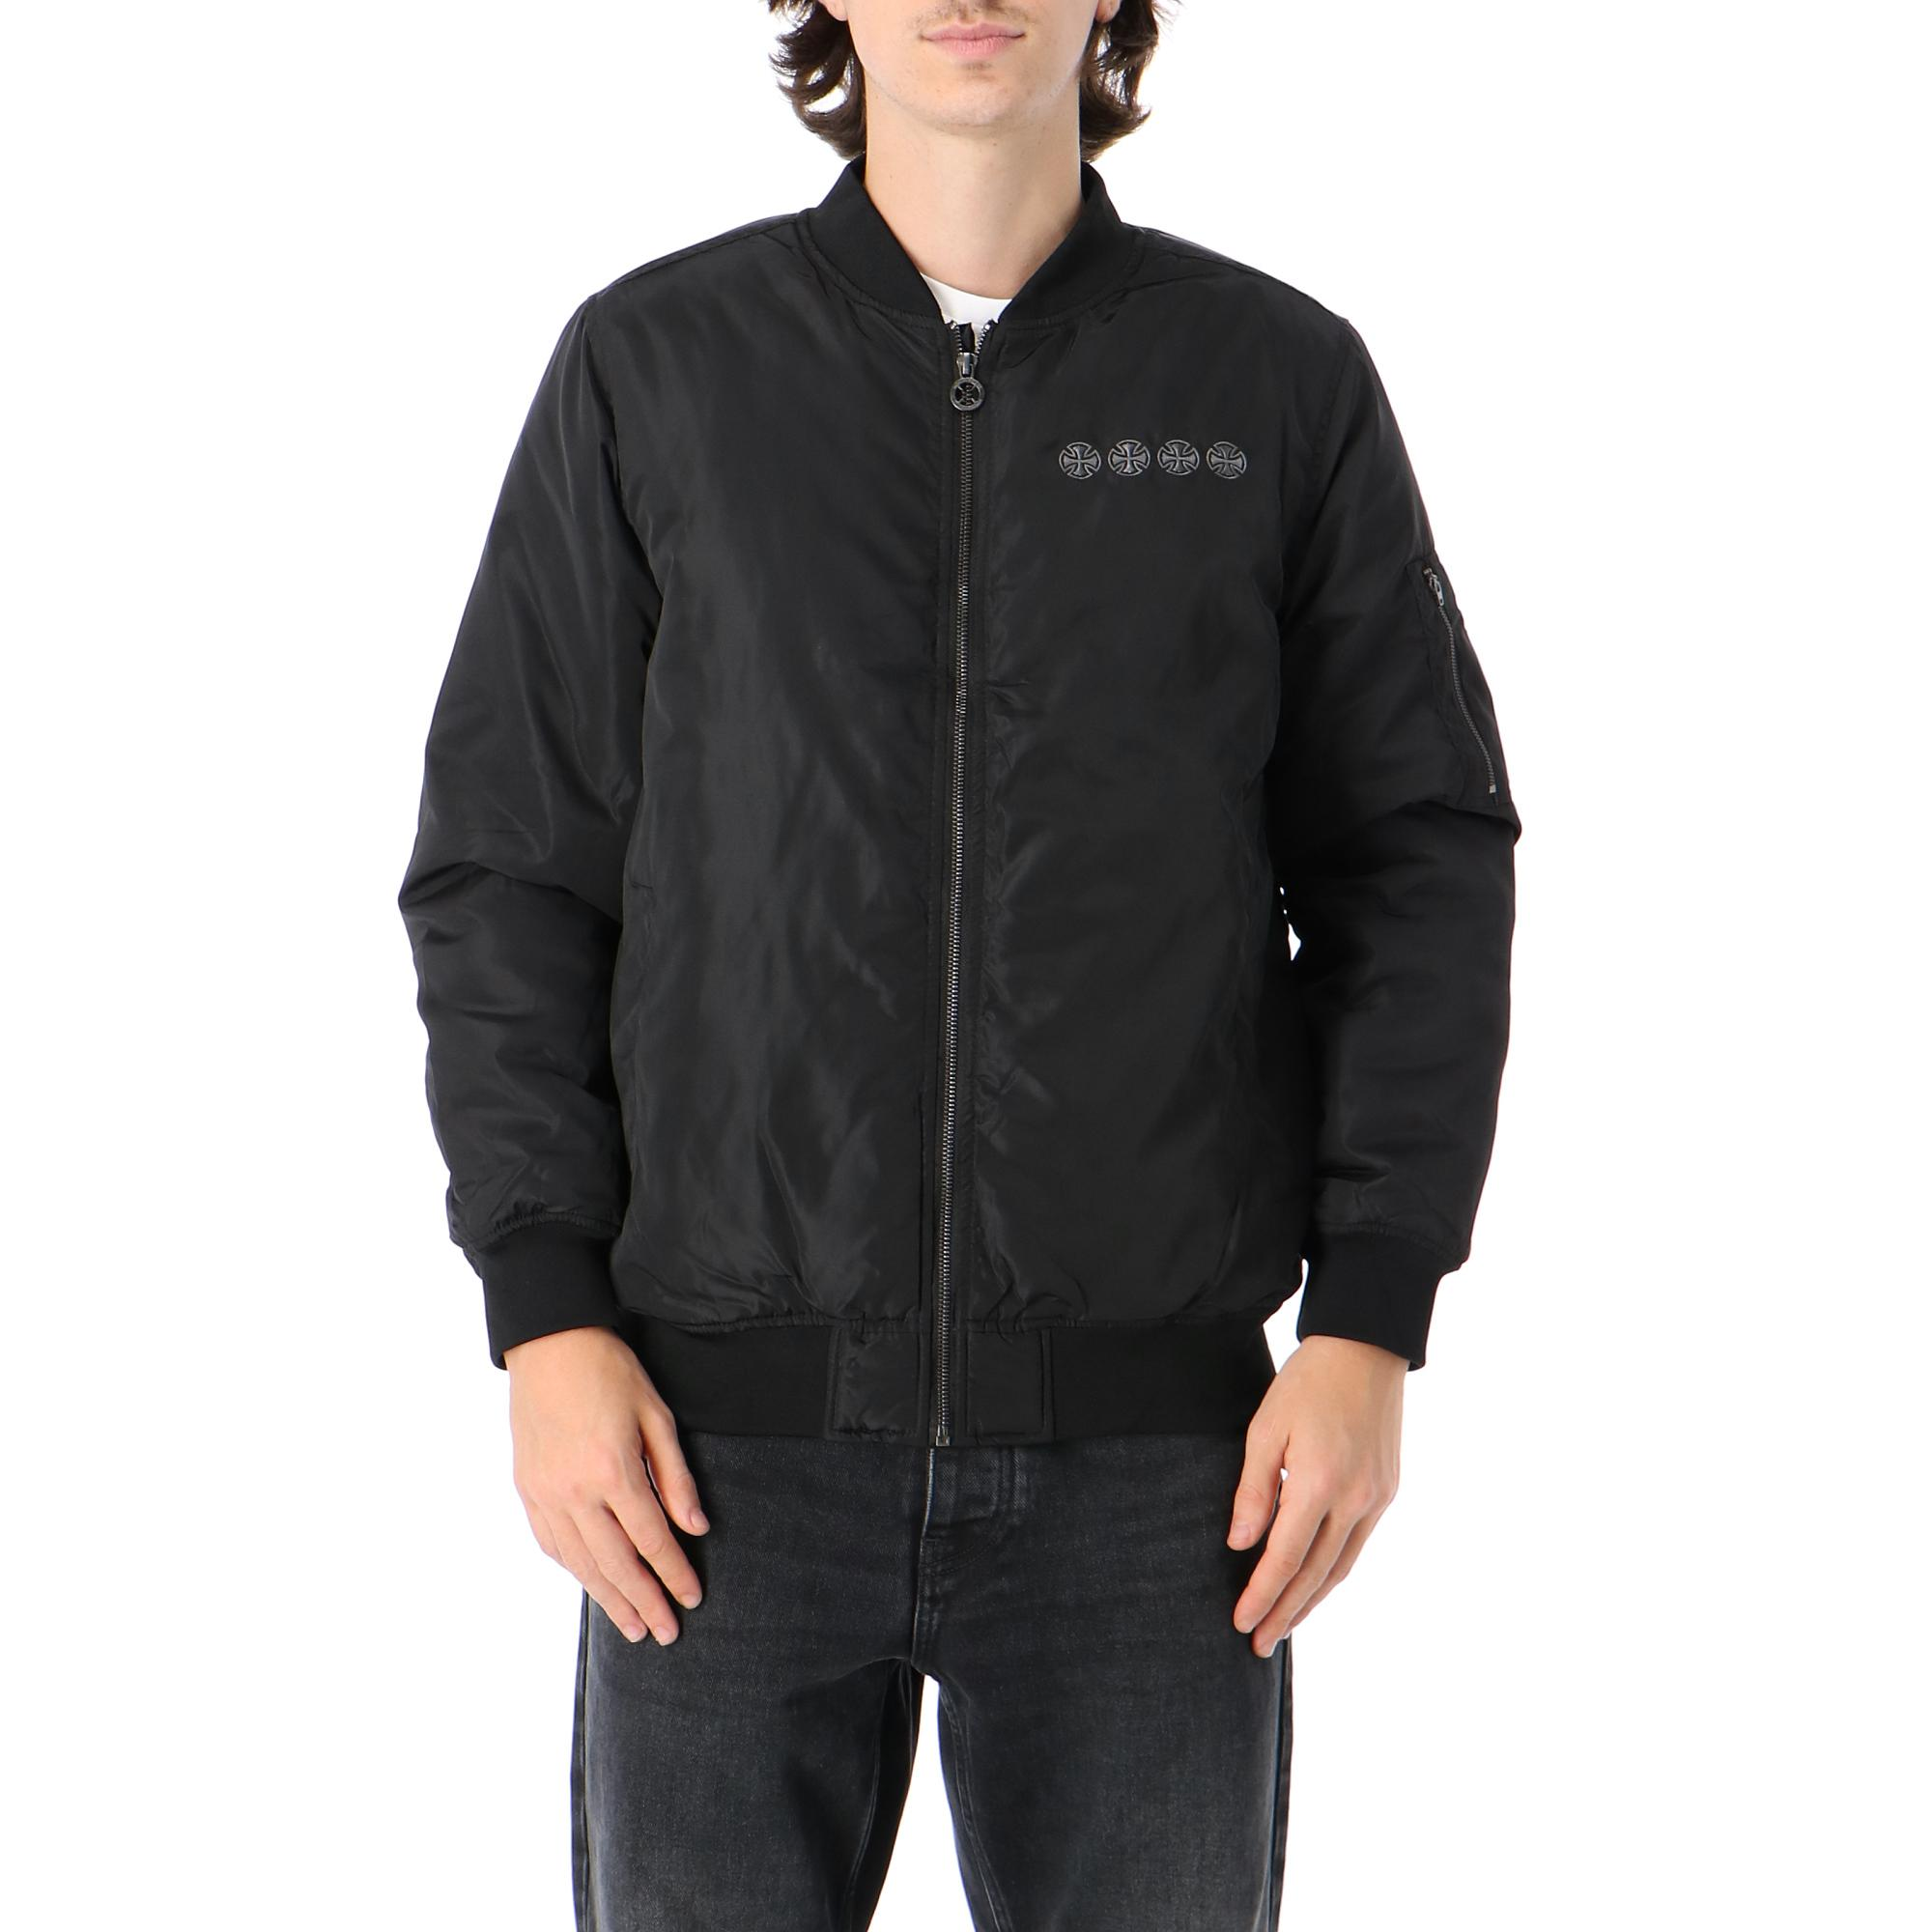 Independent Chain Cross Bomber Jacket Black